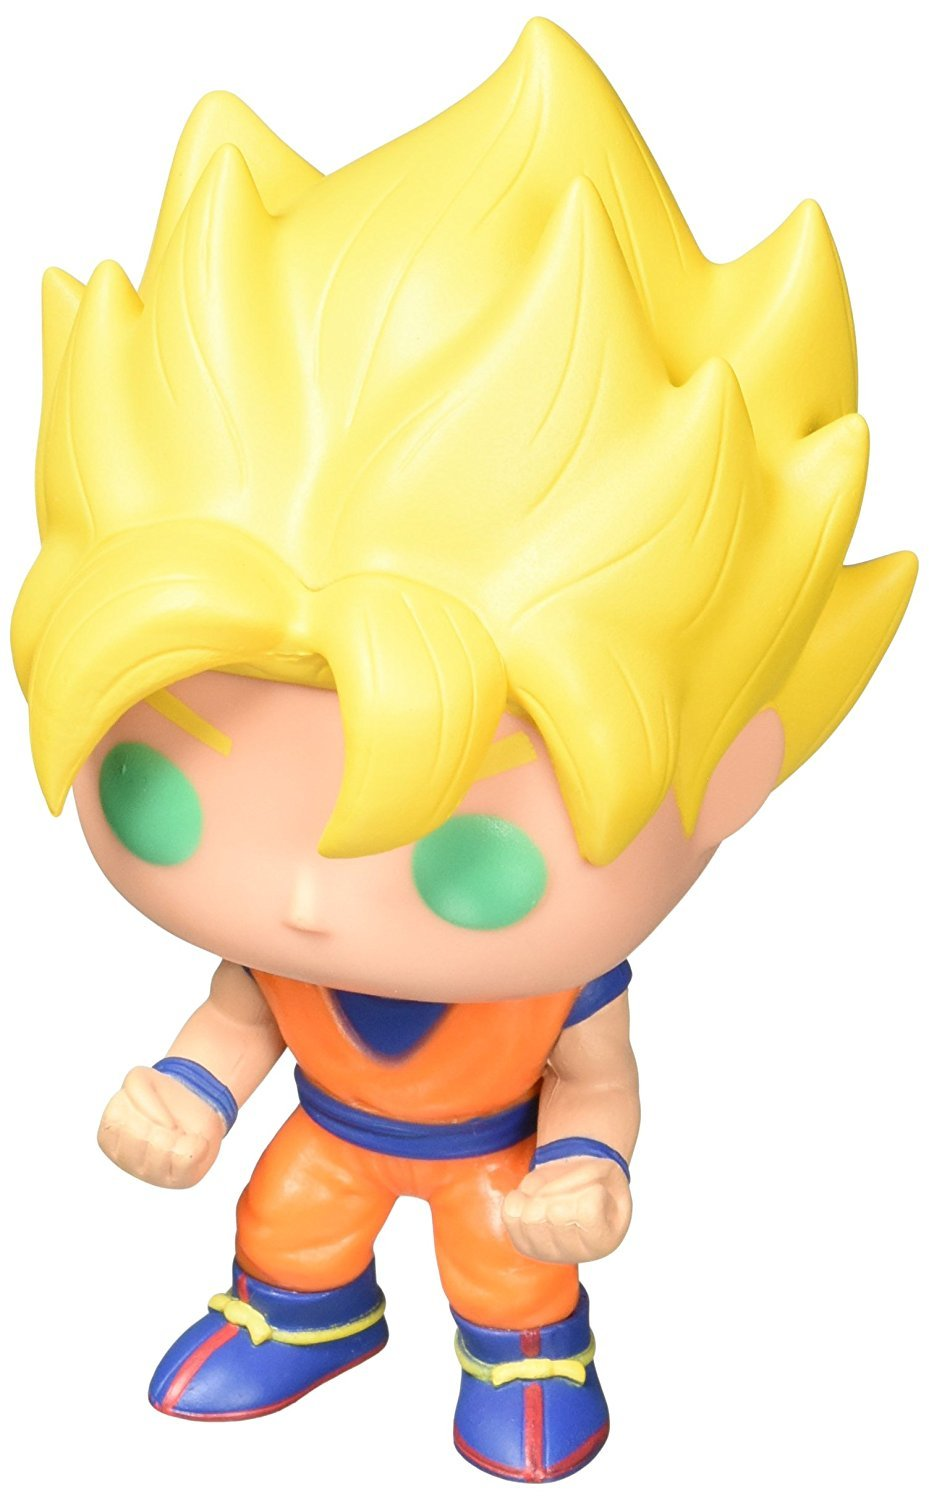 Funko POP! Dragon Ball Z Vinyl Figure Super Saiyan Goku